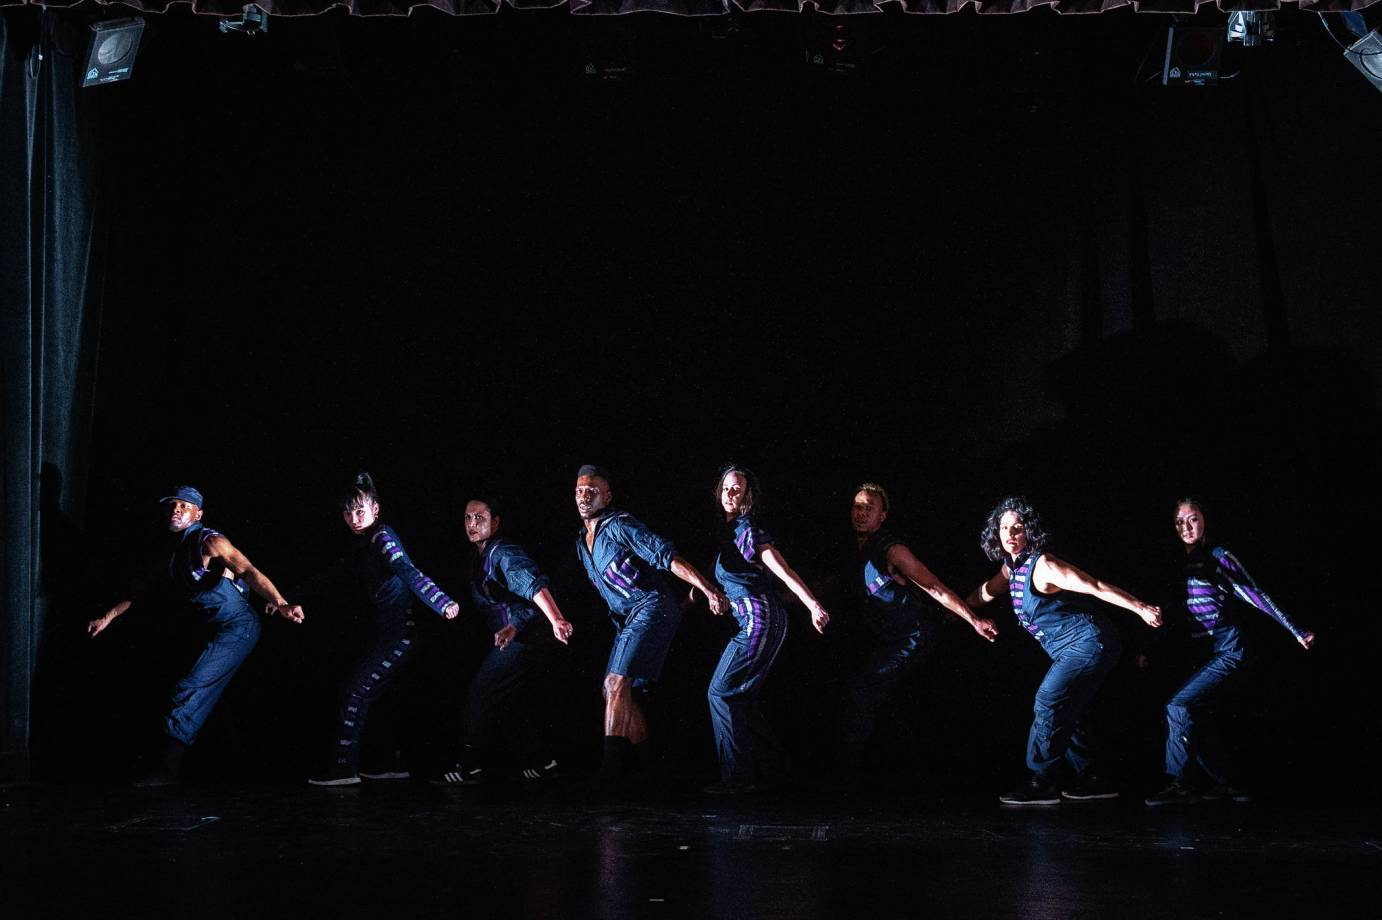 Dancers stand in a line, back arched, knees bent